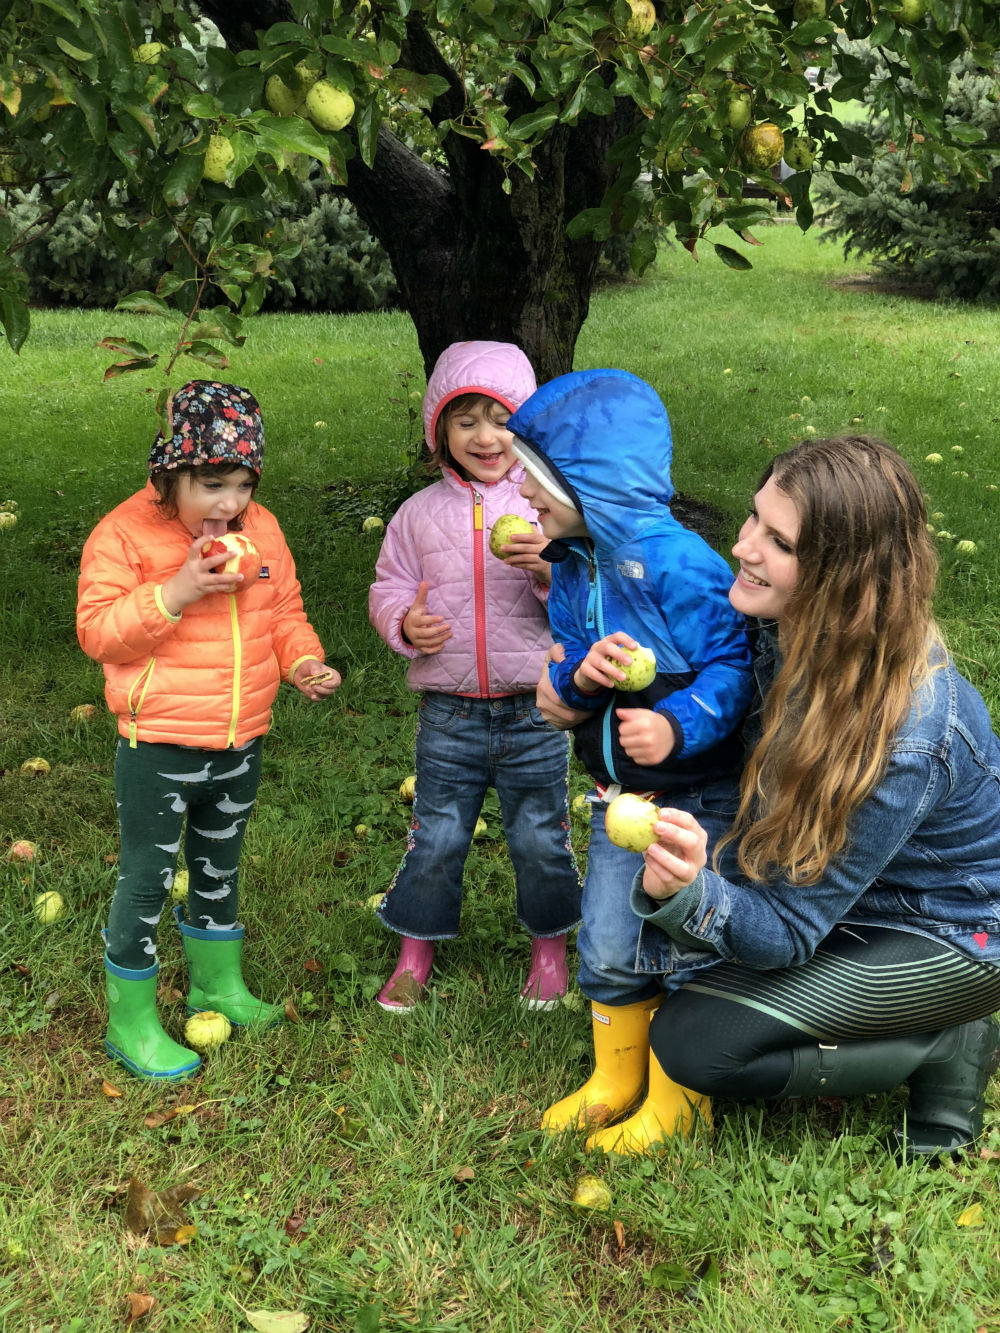 A photo of Rachel and her three children: twin daughters Eva and Sofia and son Isaak. They are laughing and eating apples underneath an apple tree.